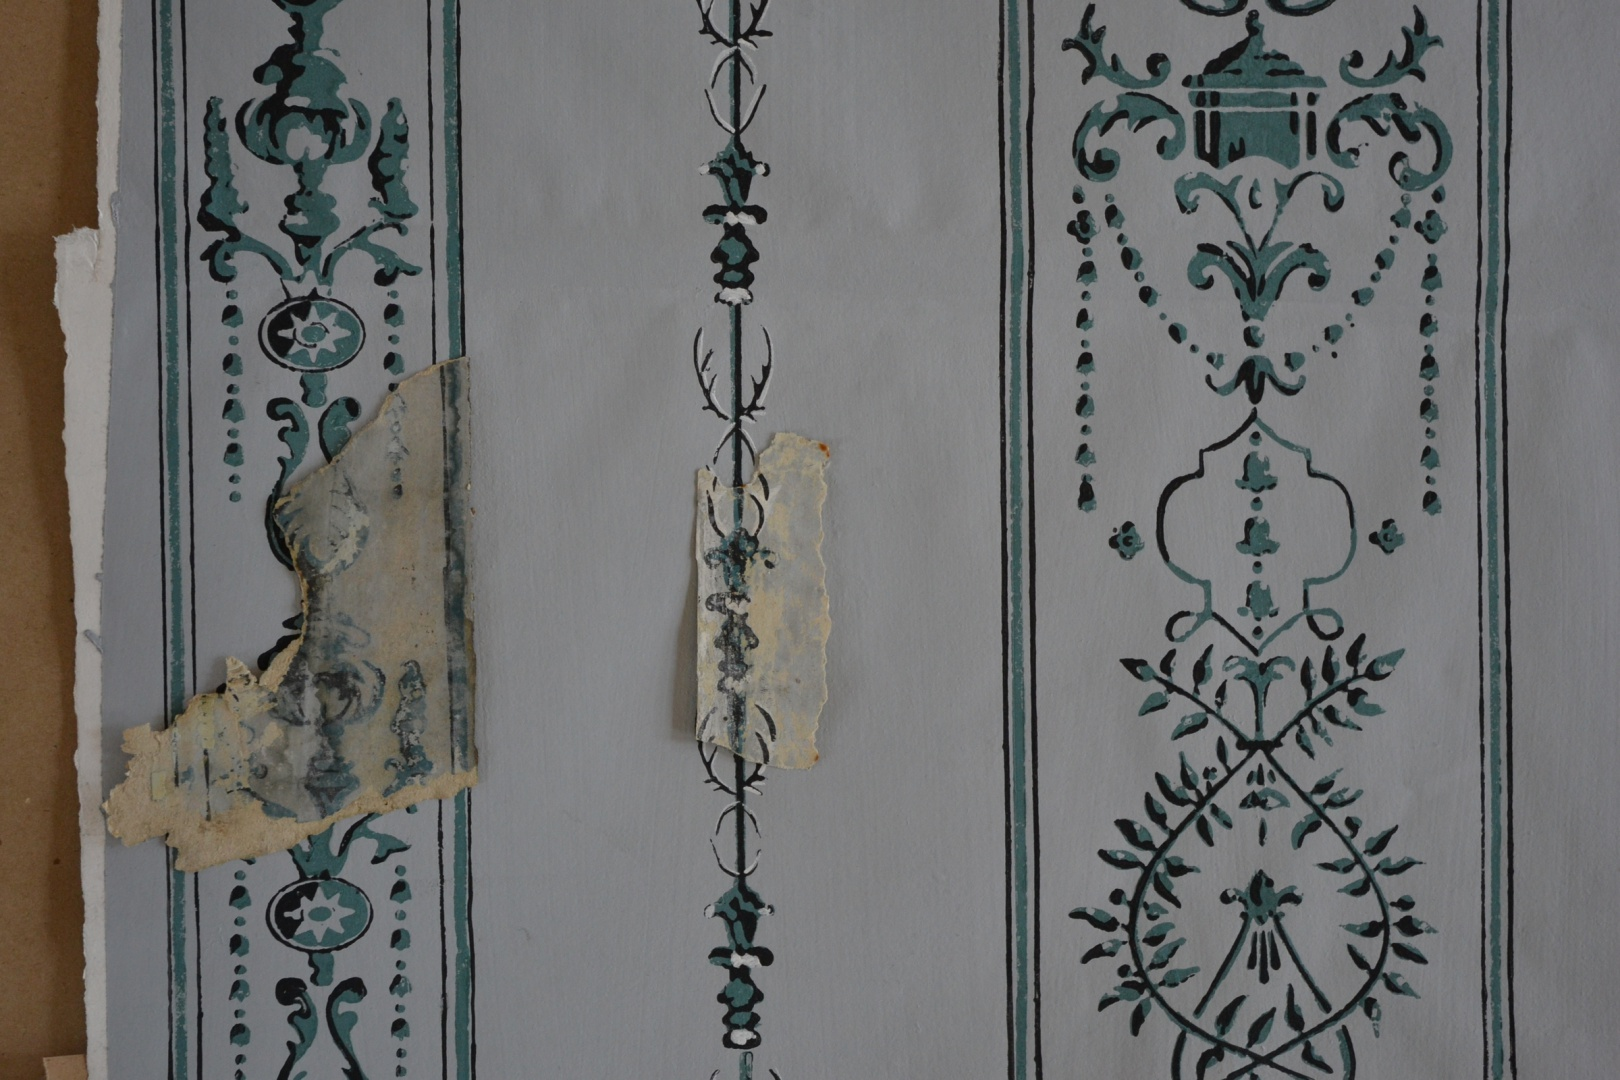 ill 8. Reconstruction of the grey wallpaper with historical fragments.